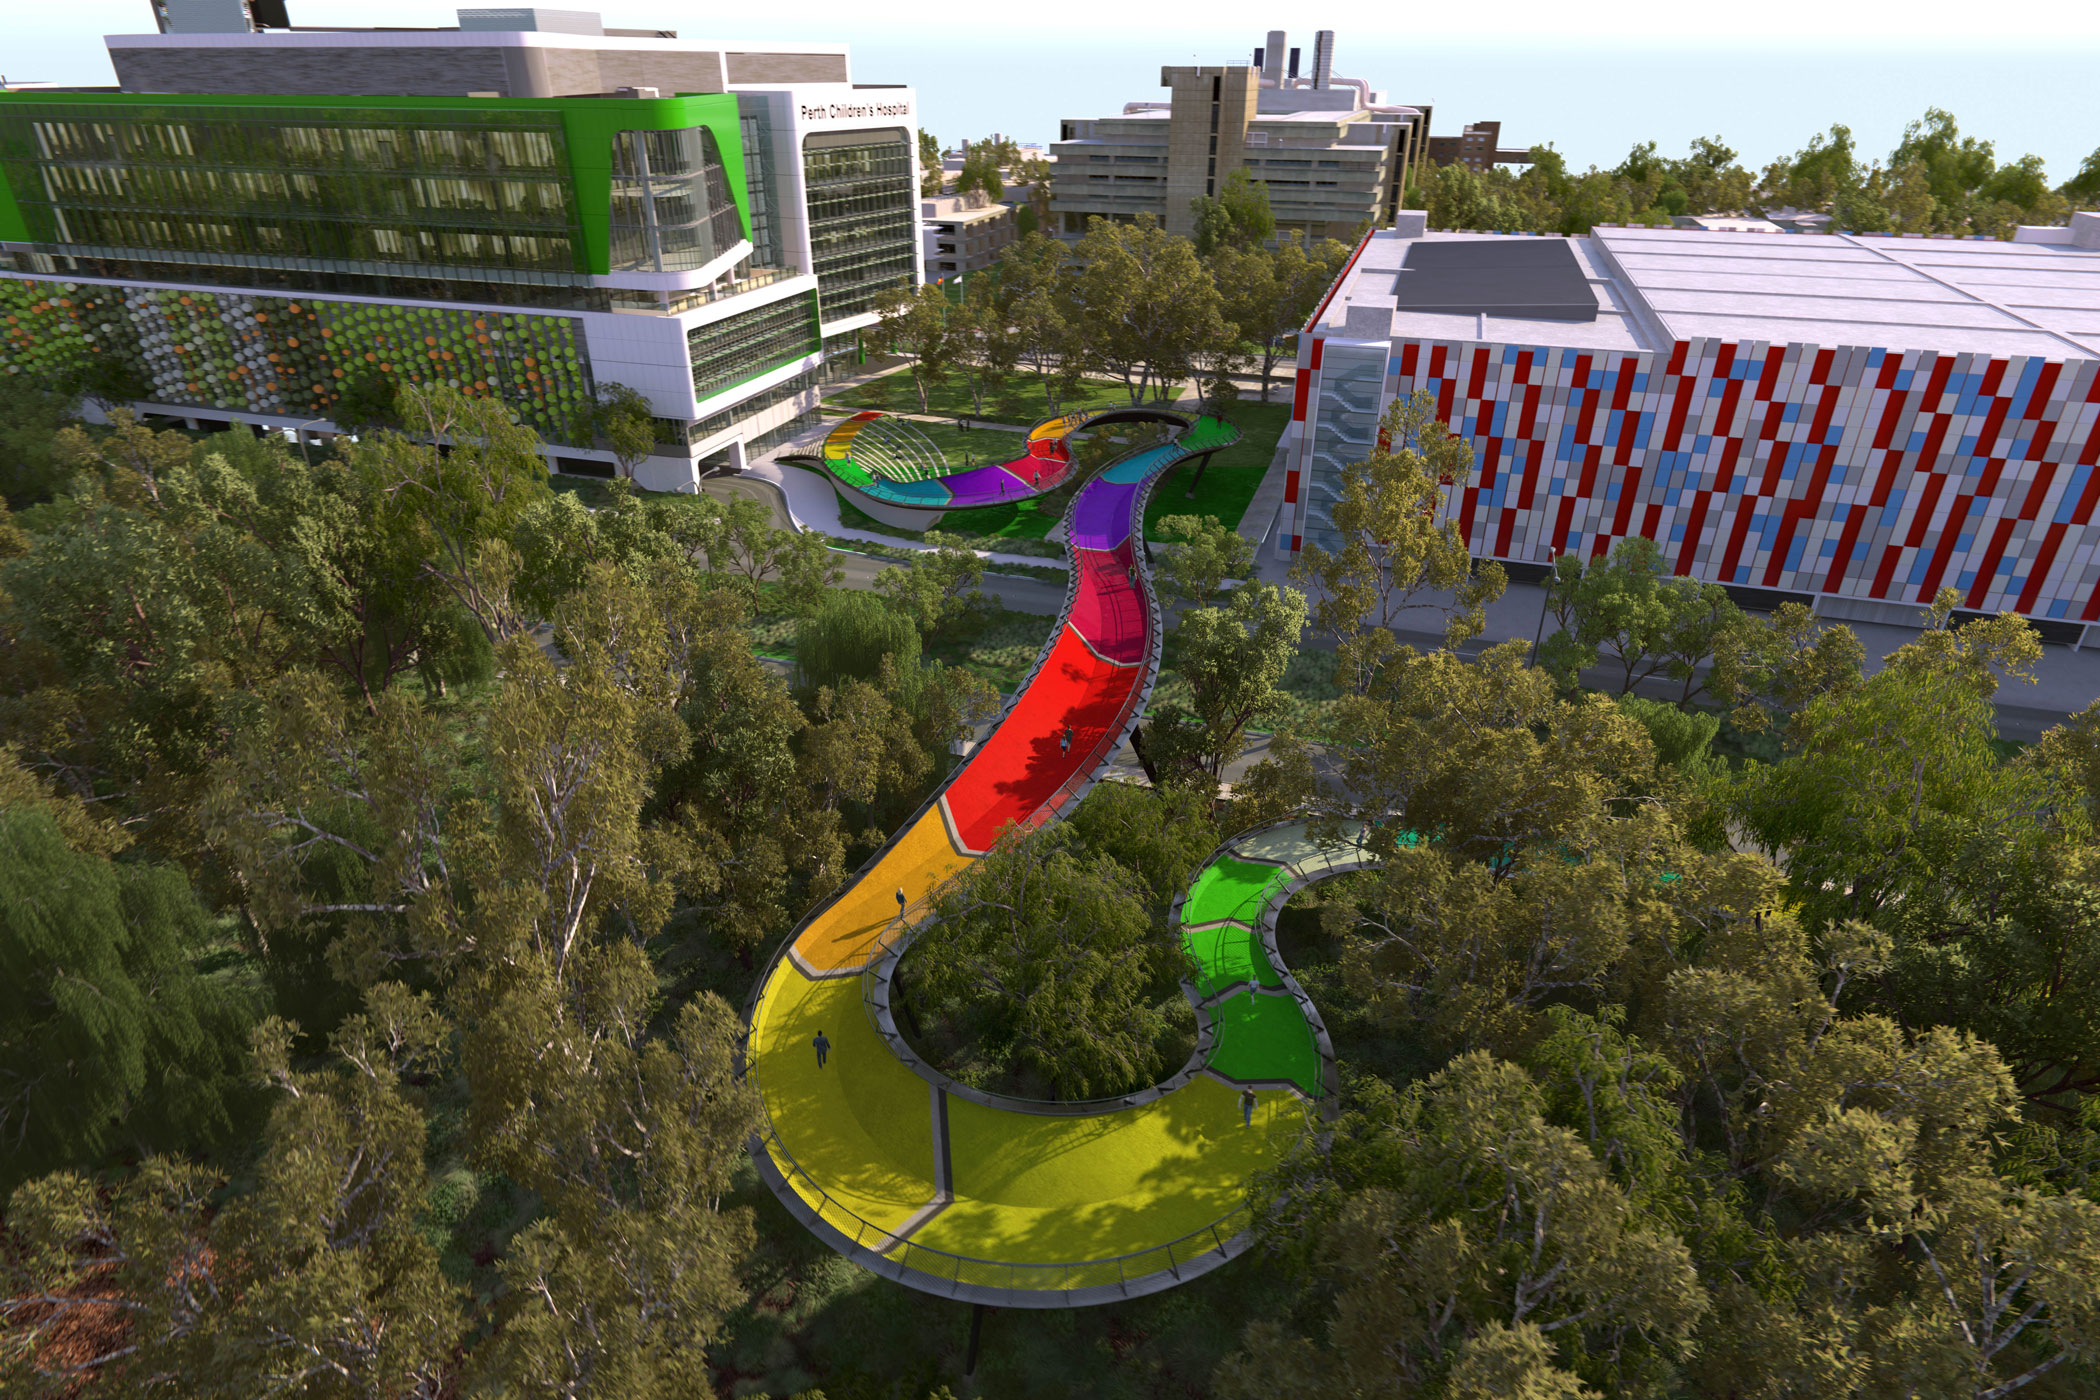 Rainbow coloured curvy pedestrian bridge connects the new Perth Children's Hospital to Kings Park above the road